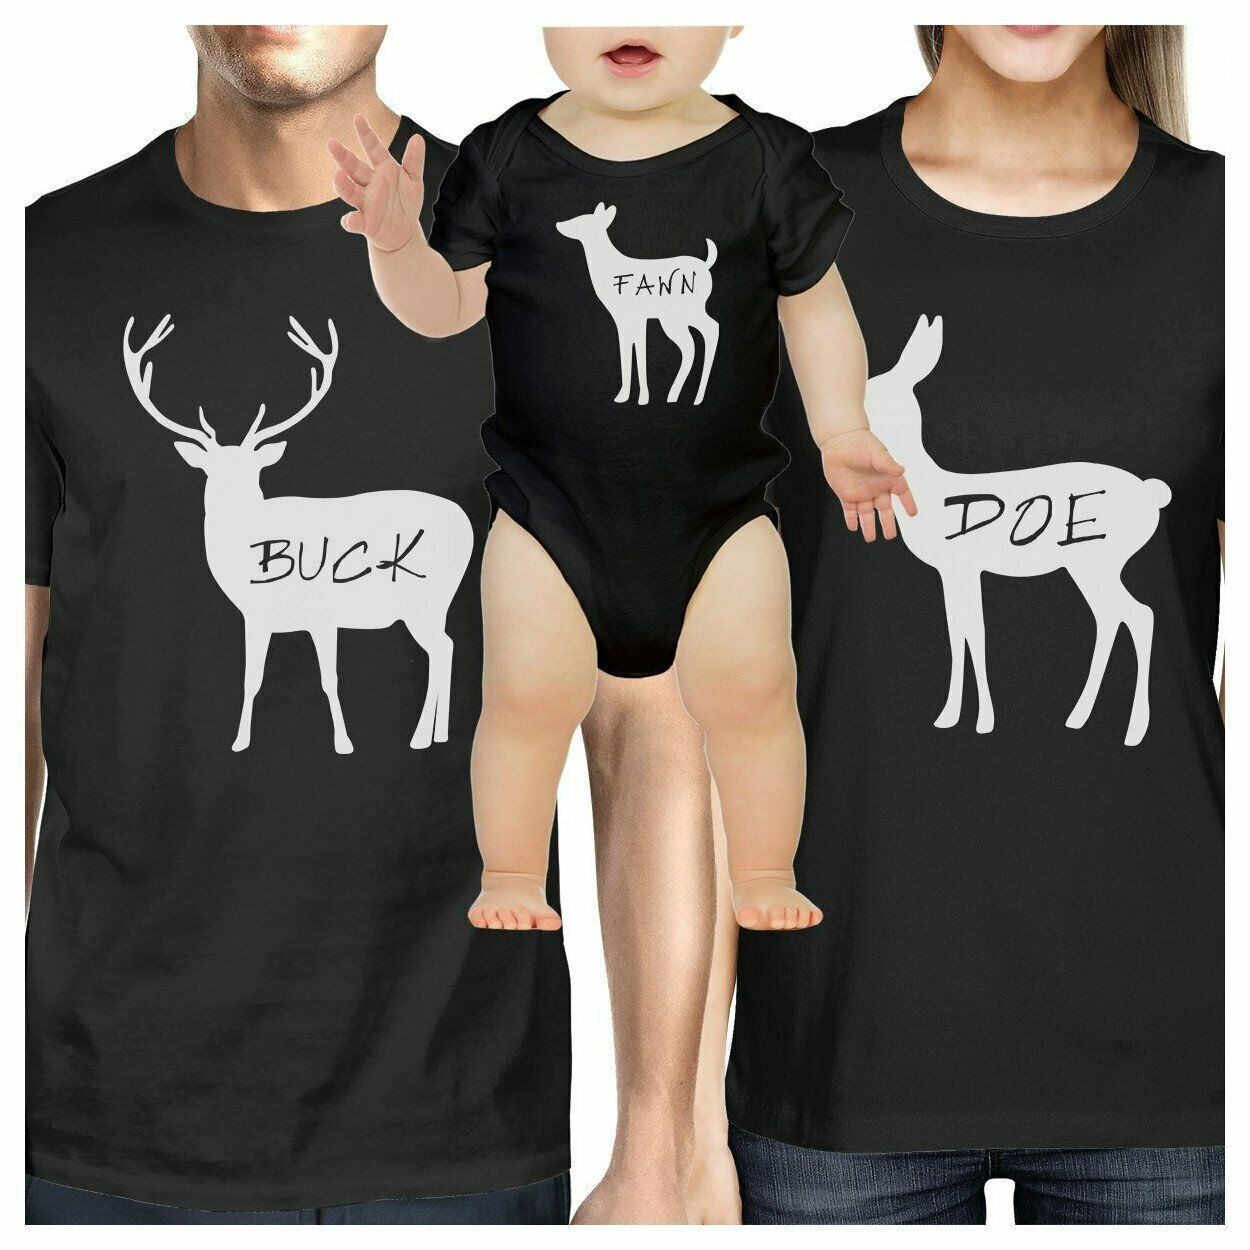 Buck Mens Black T-Shirt Unique Family Matching Shirts For Dad Gifts - $19.26